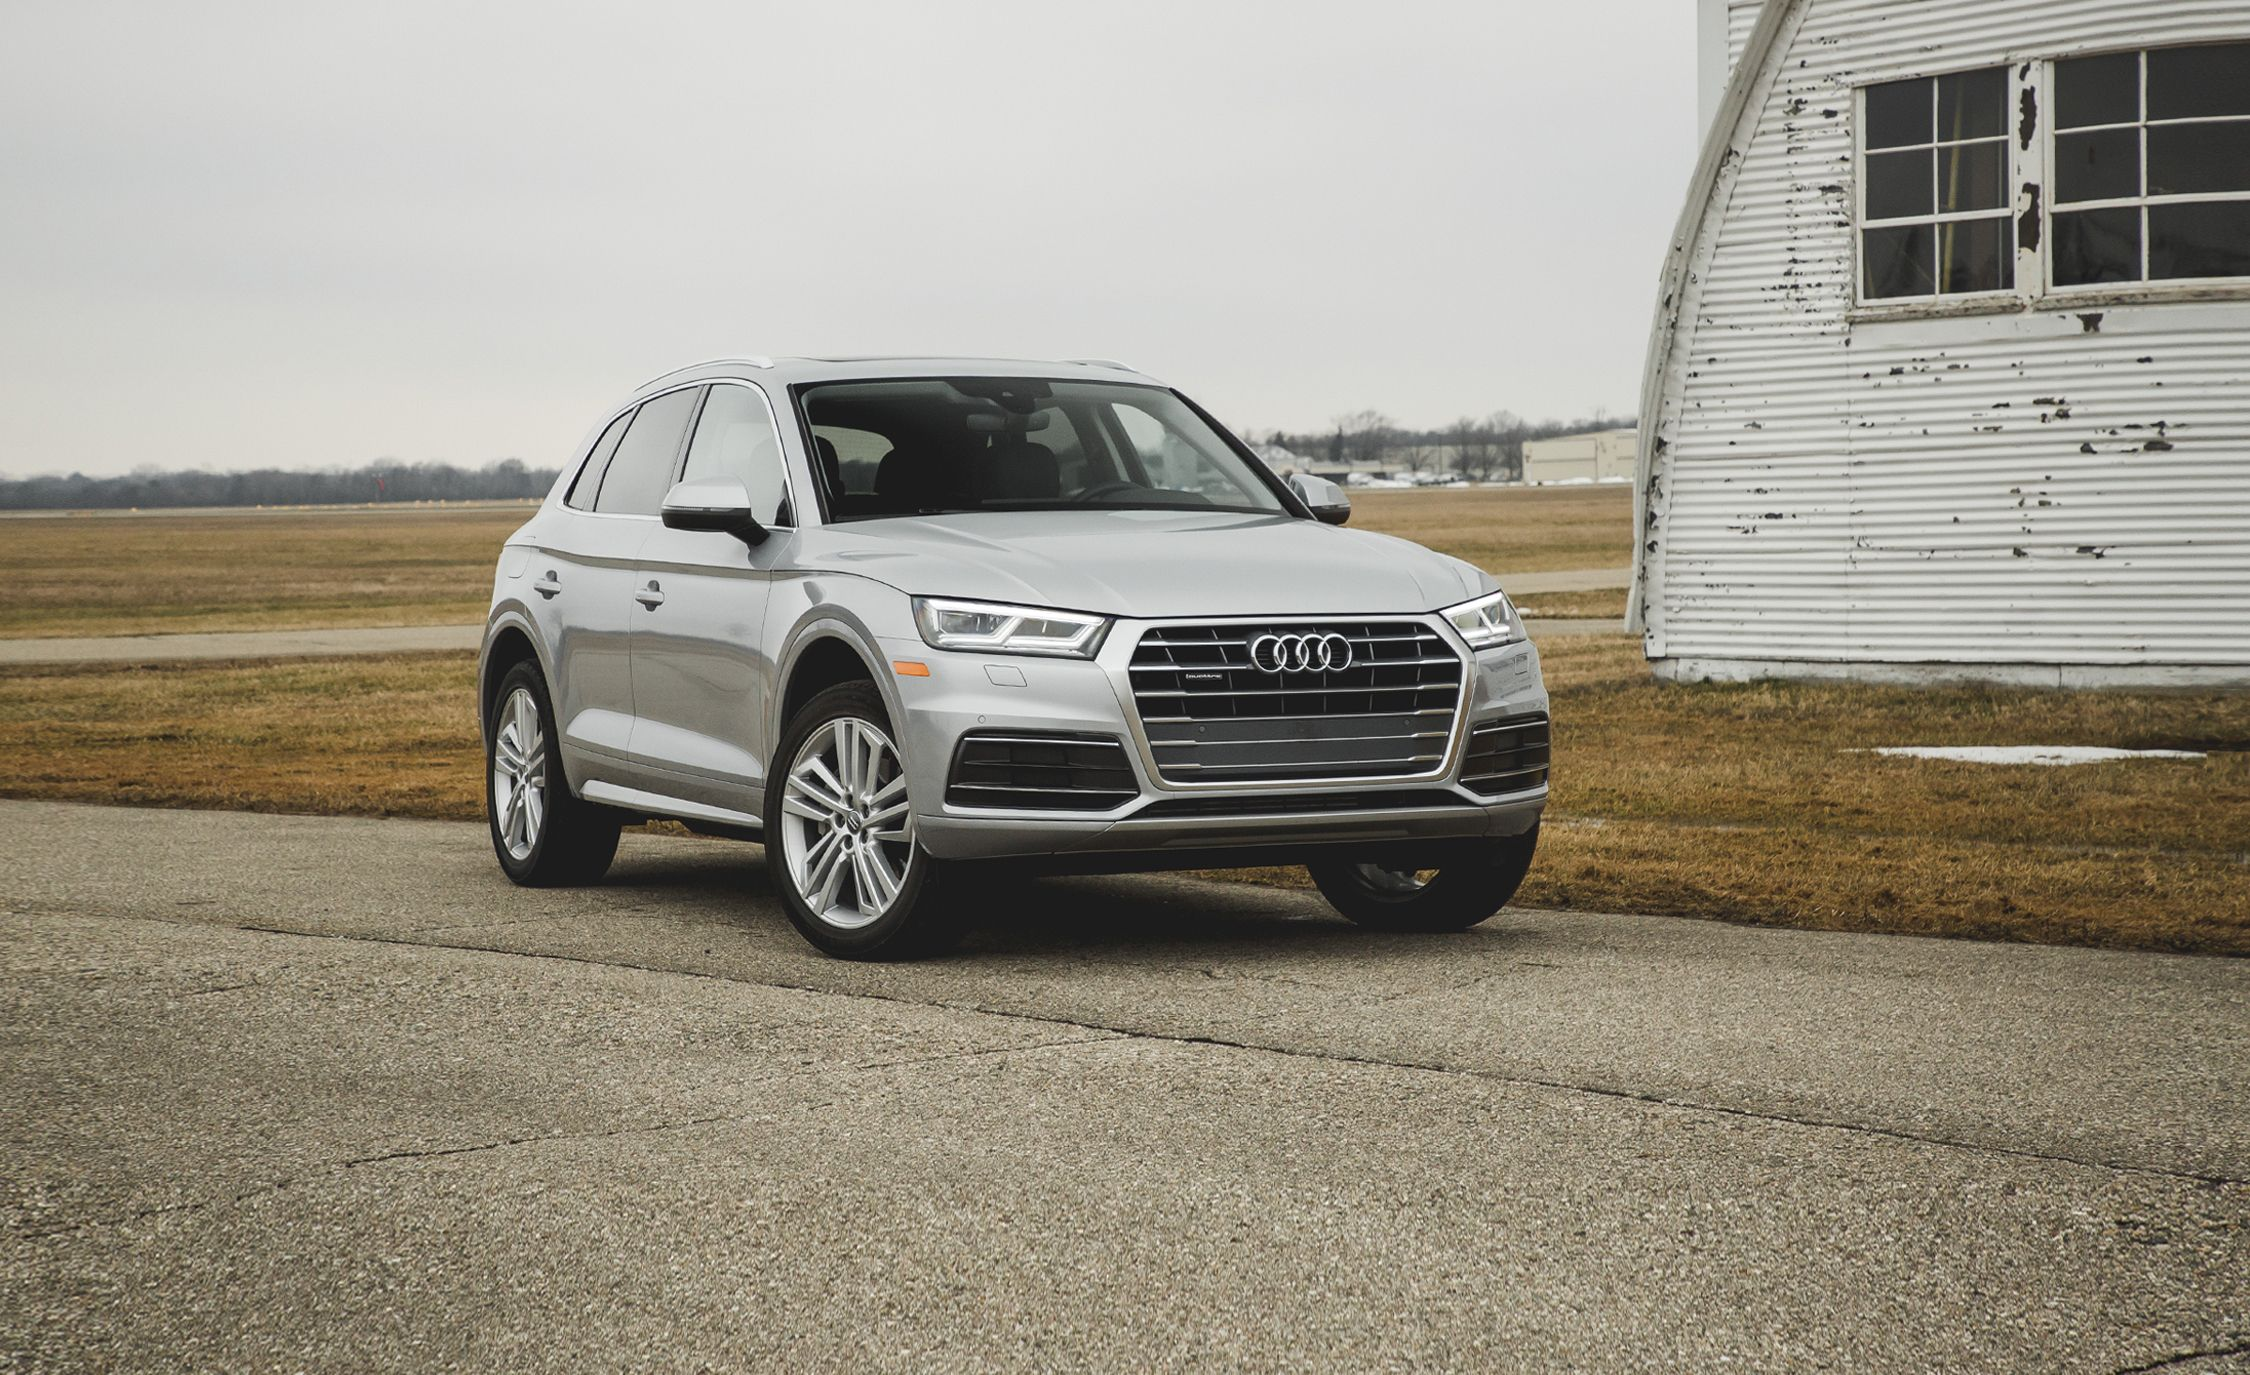 Audi Q5 Reviews Audi Q5 Price s and Specs